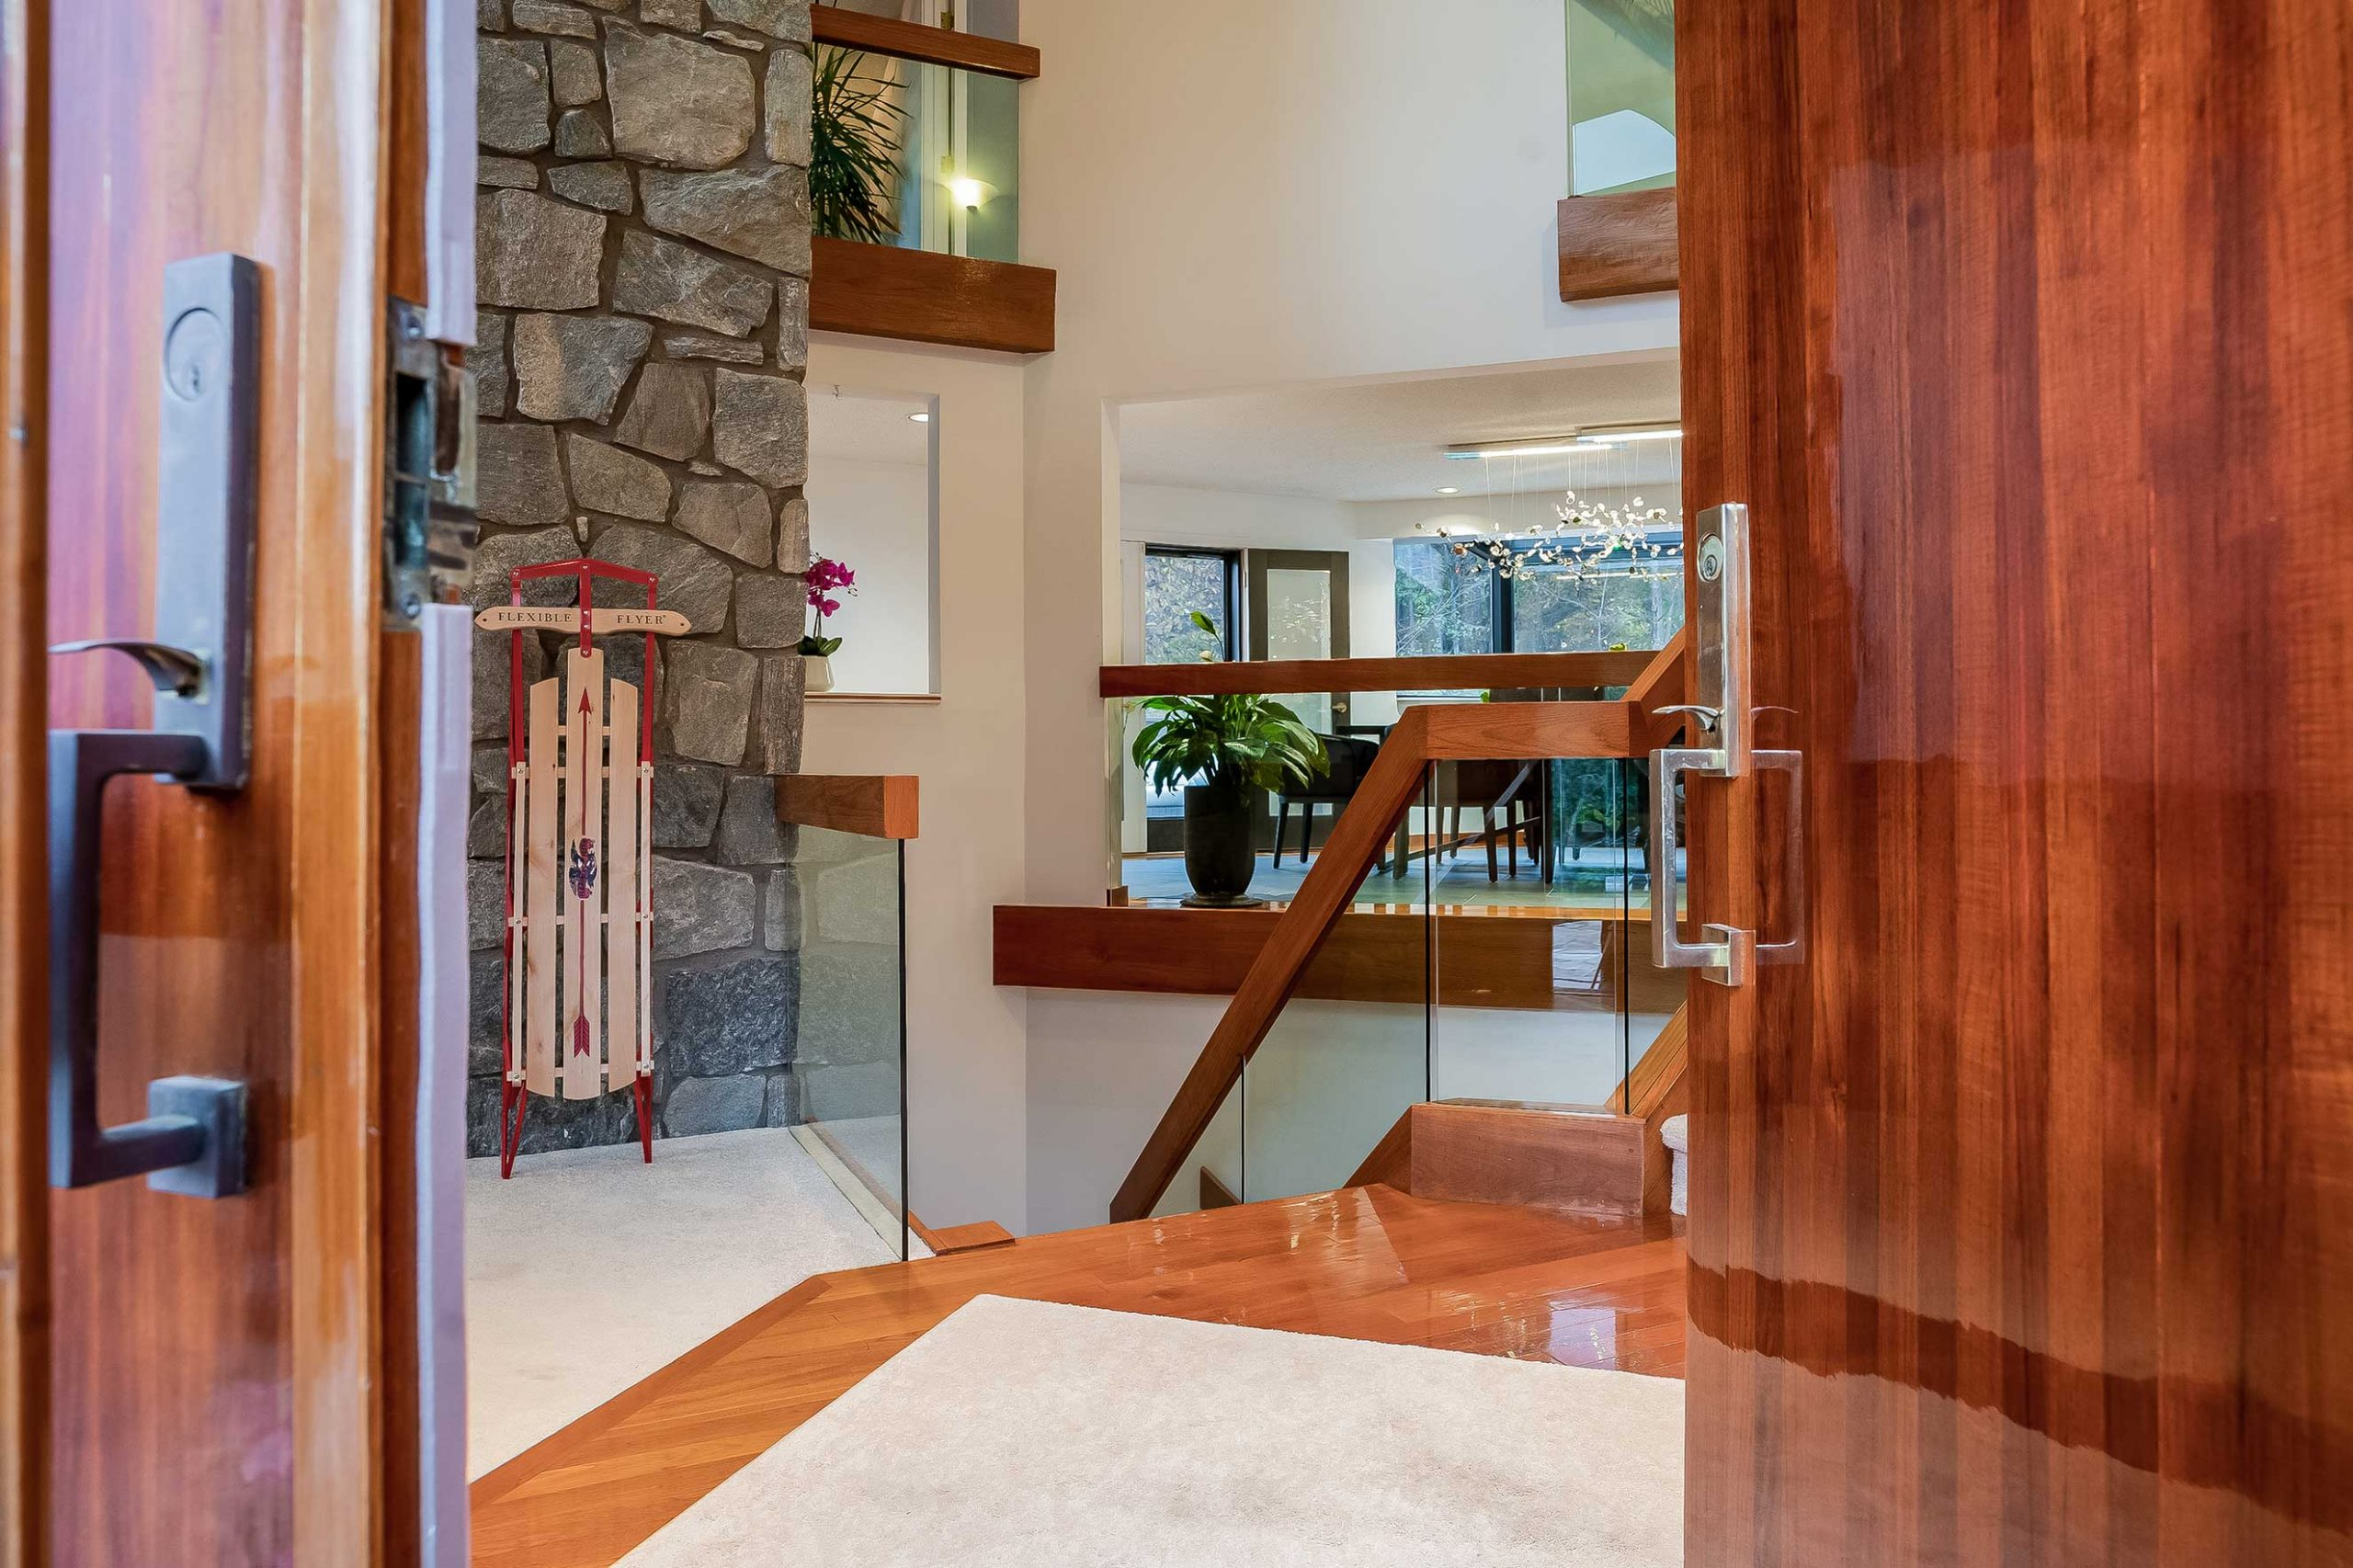 Copy-of-Foyer-front-entrance-A+-77